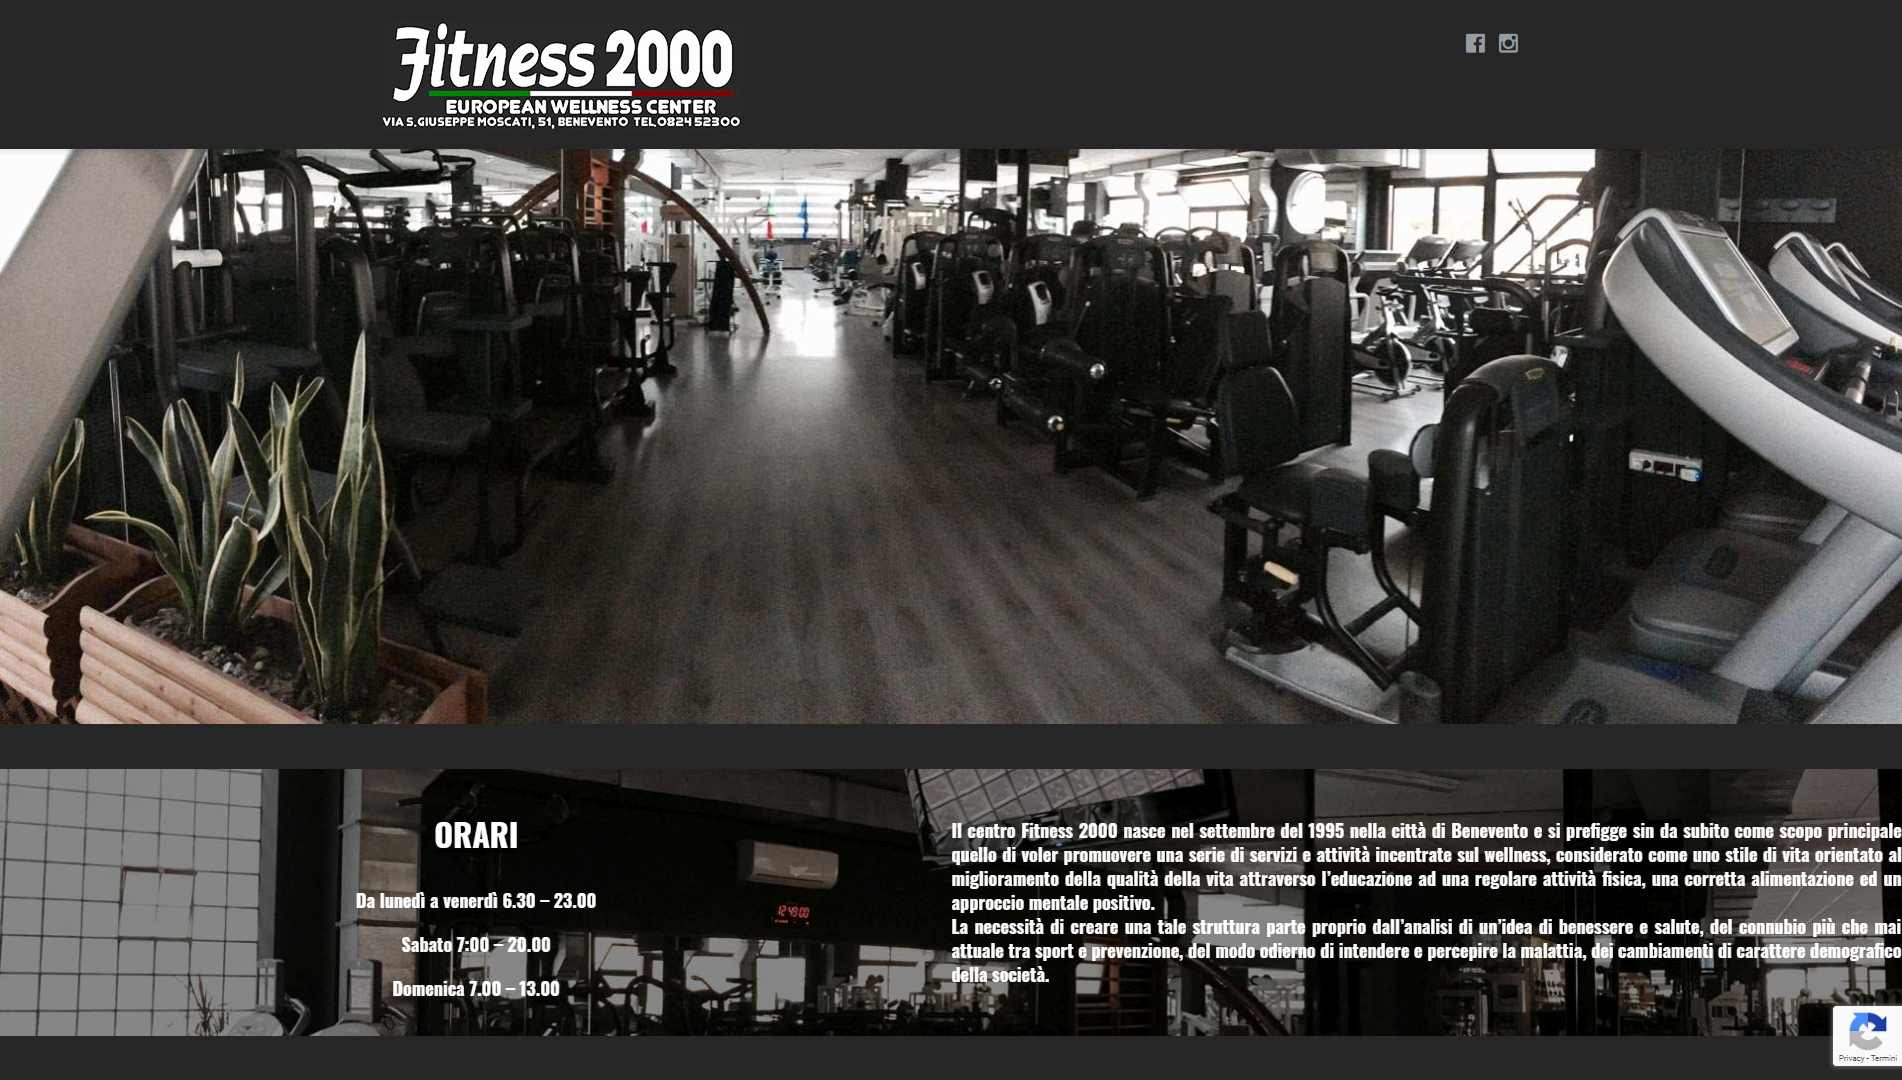 Sito web Wellness Center Palestra Fitness 2000 a Benevento